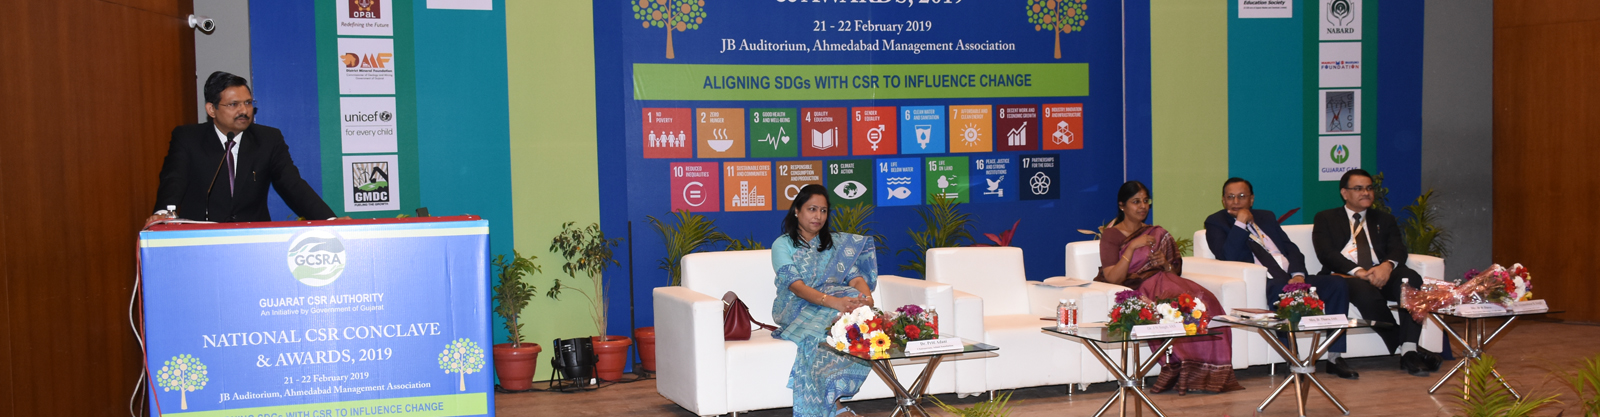 National CSR Conclave and Awards 2019